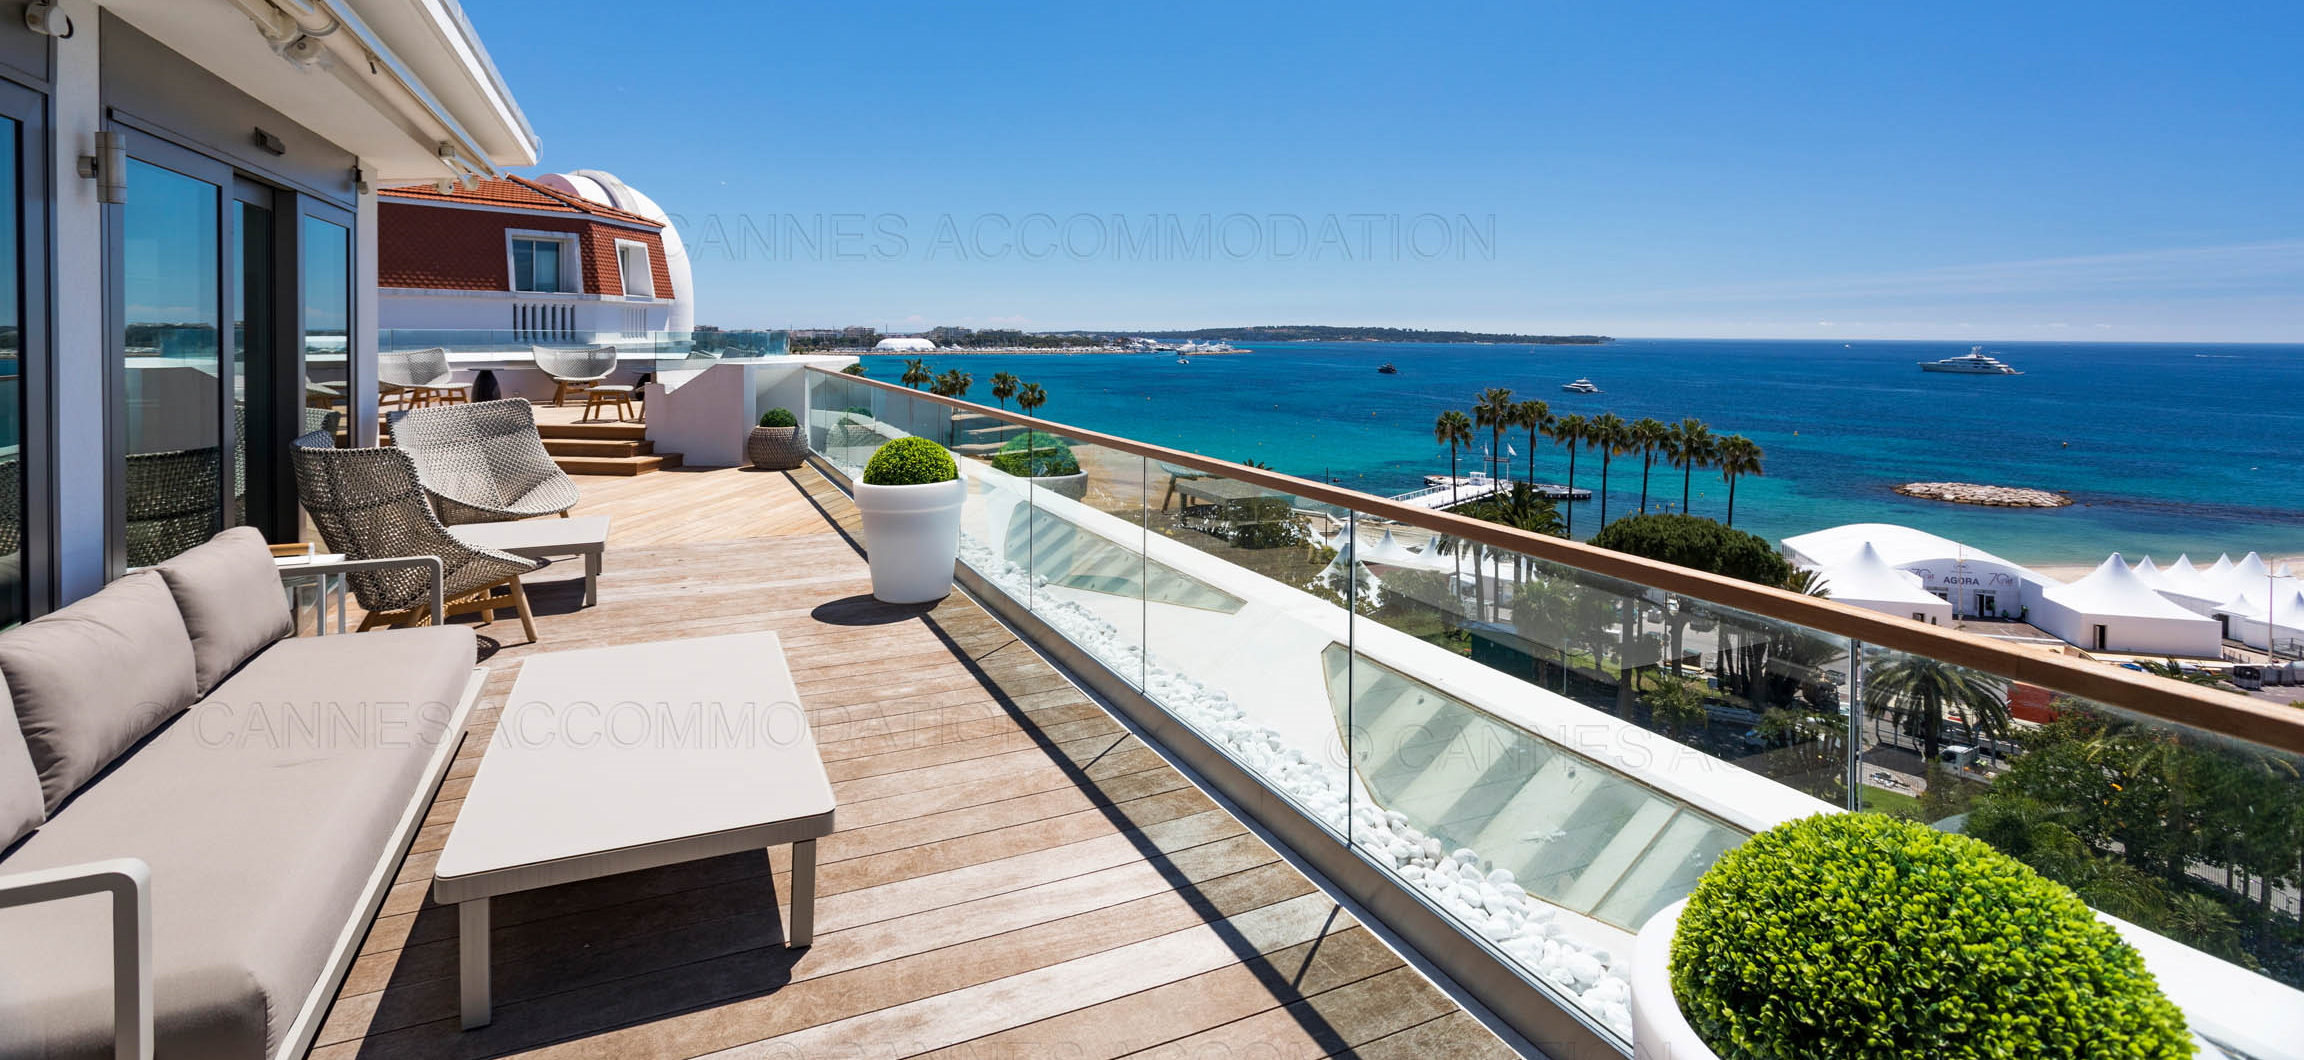 Cannes Accommodations 7 advantages for you of renting a Cannes apartment